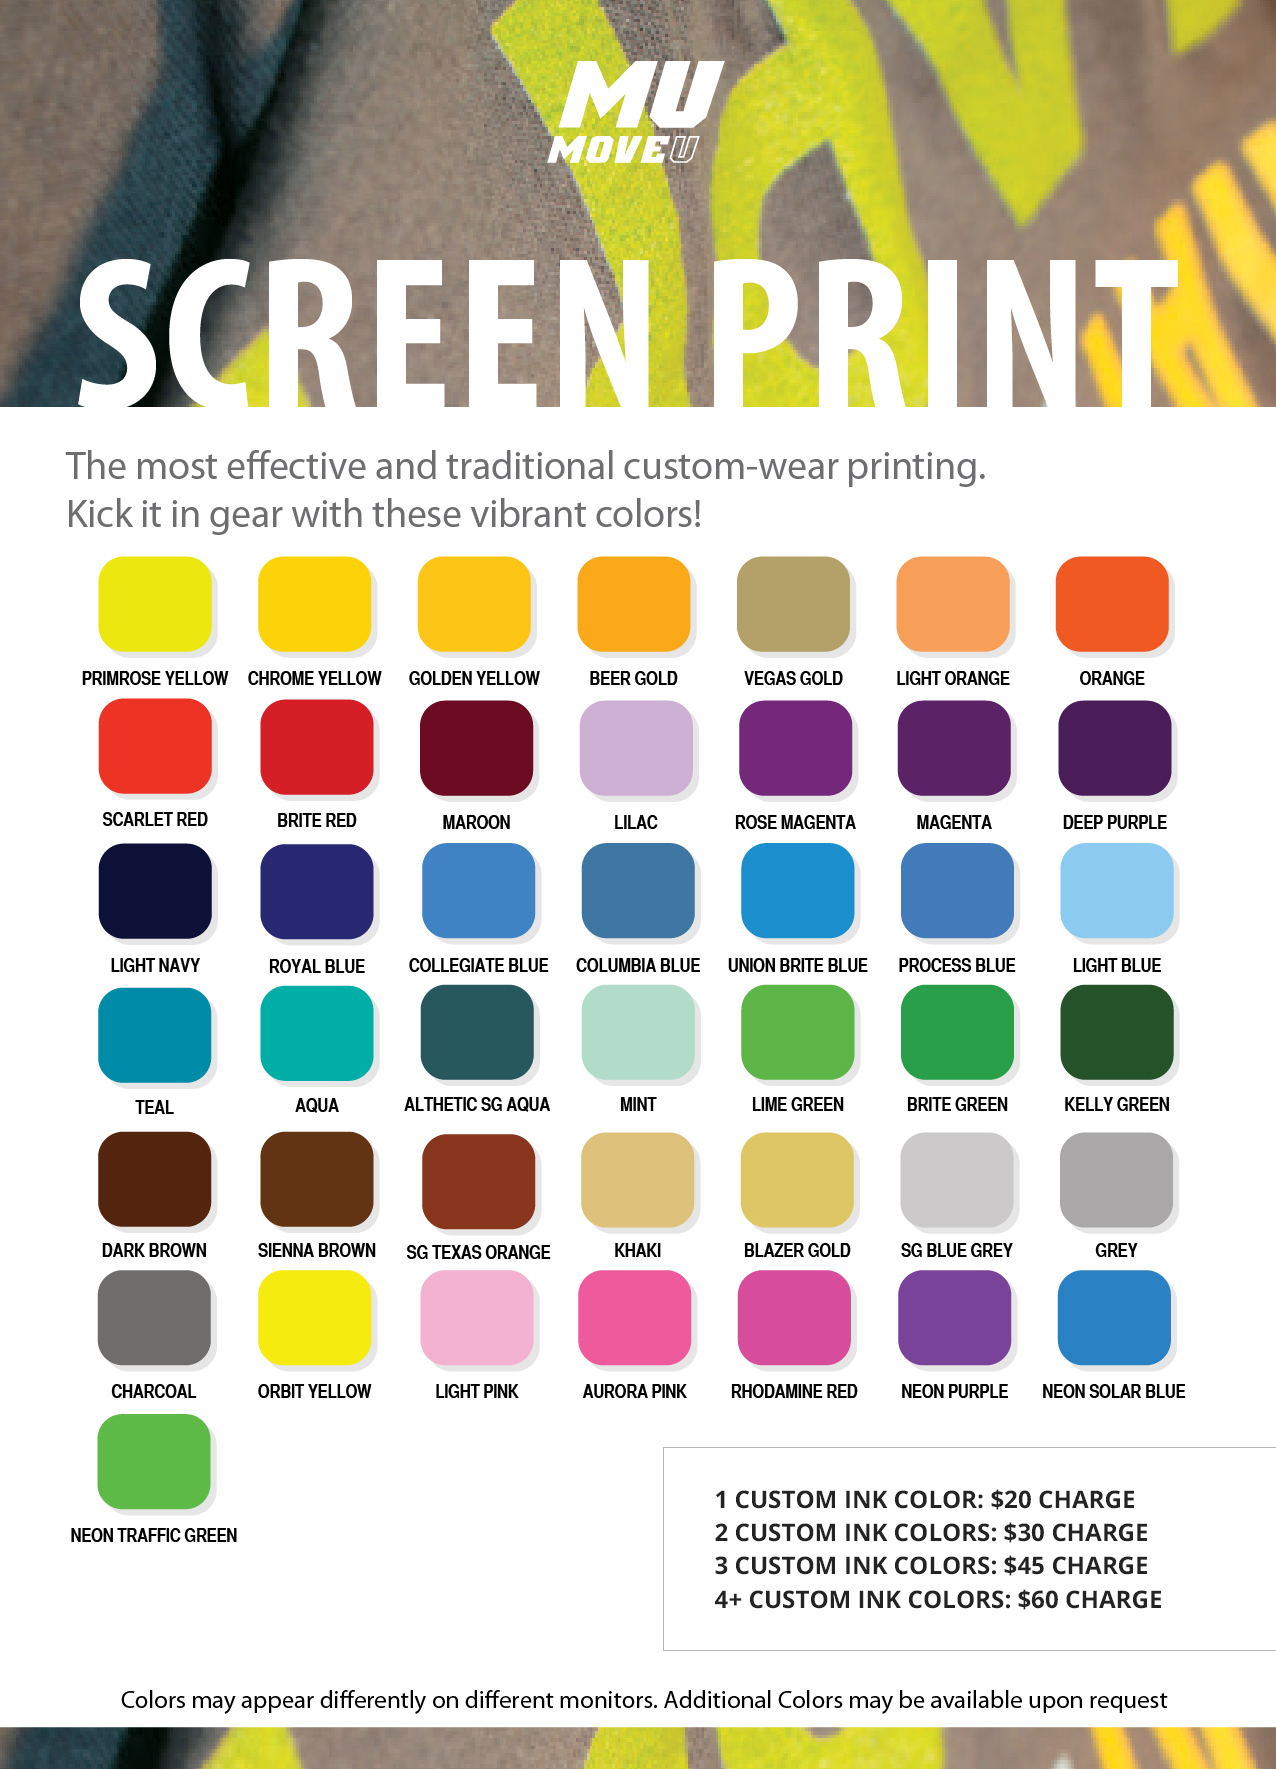 Sreen-print-swatches